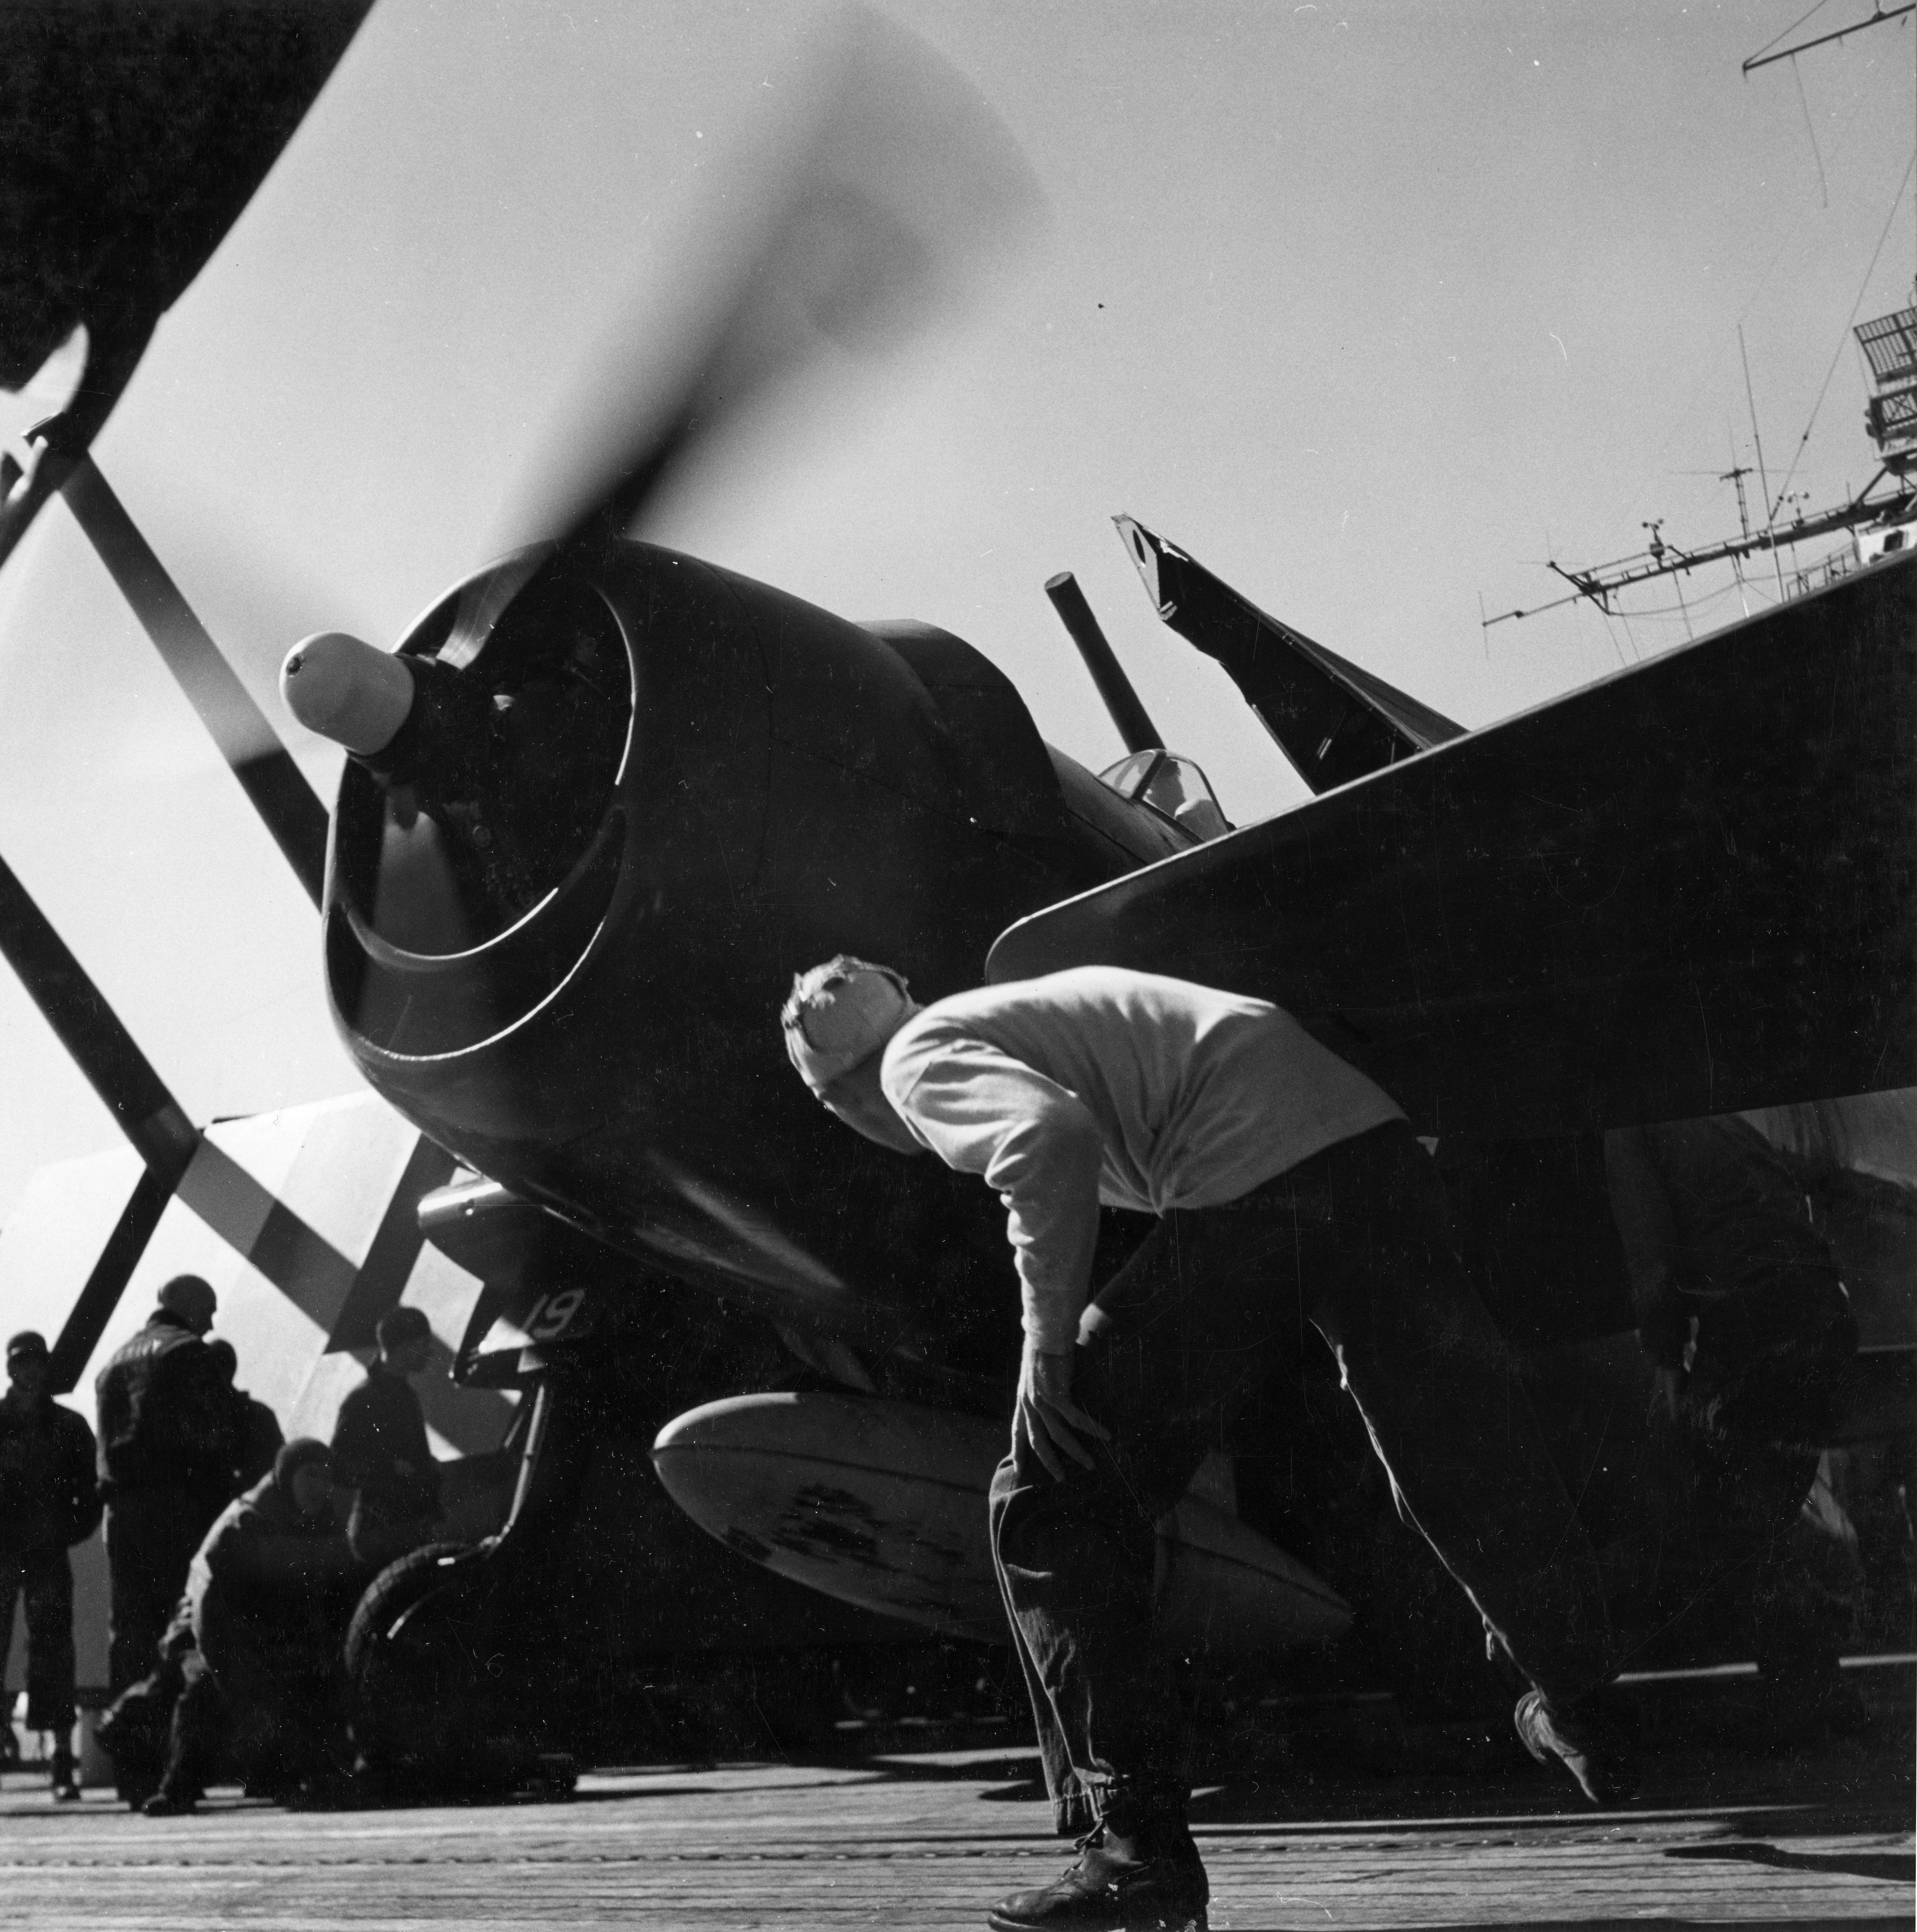 Grumman F6F 5 Hellcat VF 11 Sundowners White 19 preparing for launch CV 12 USS Hornet 1944 01